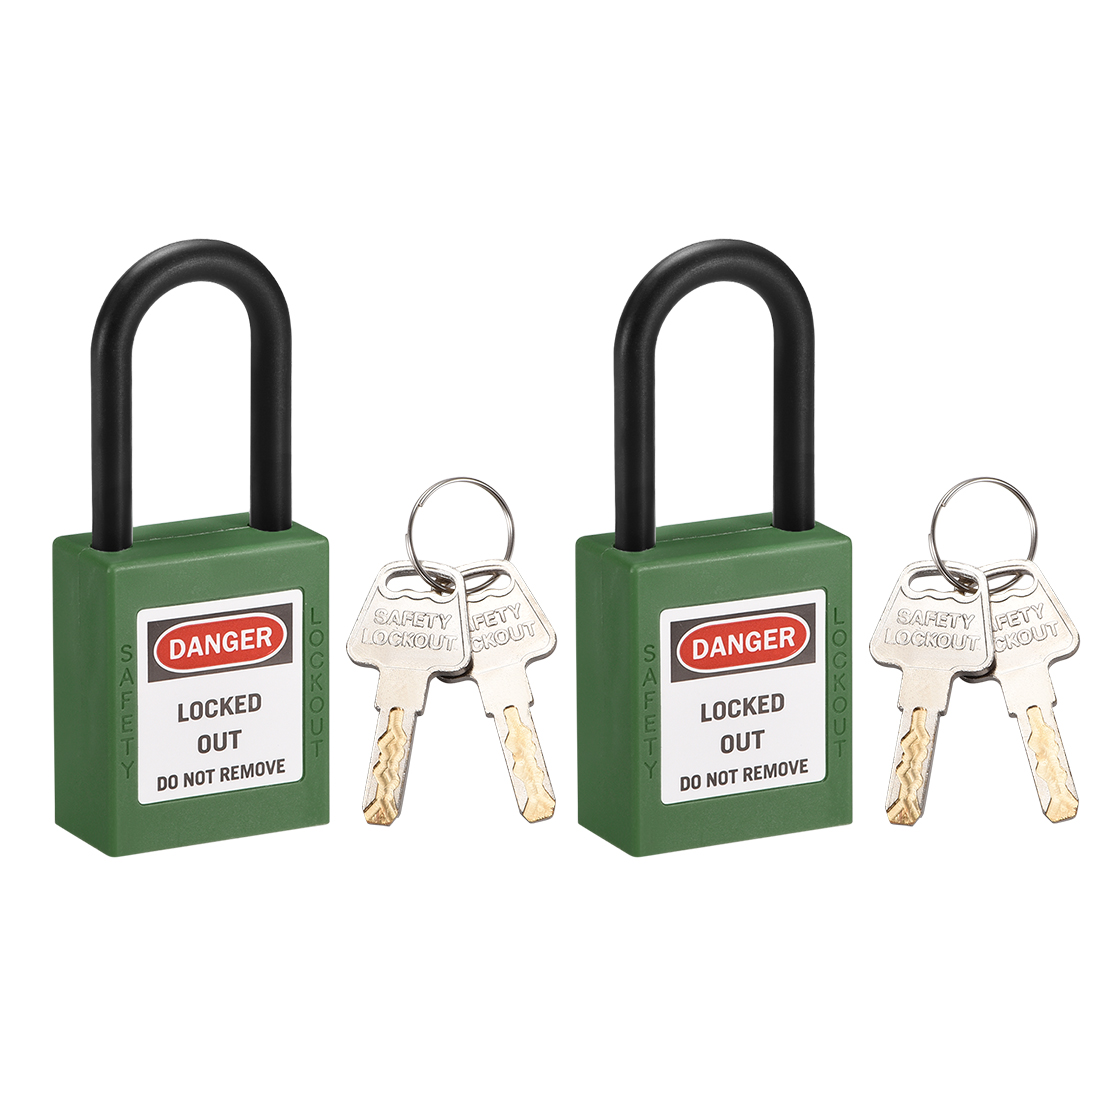 Lockout Tagout Locks,1-1/2 Inch Shackle Key Different Safety Padlock Green 2pcs